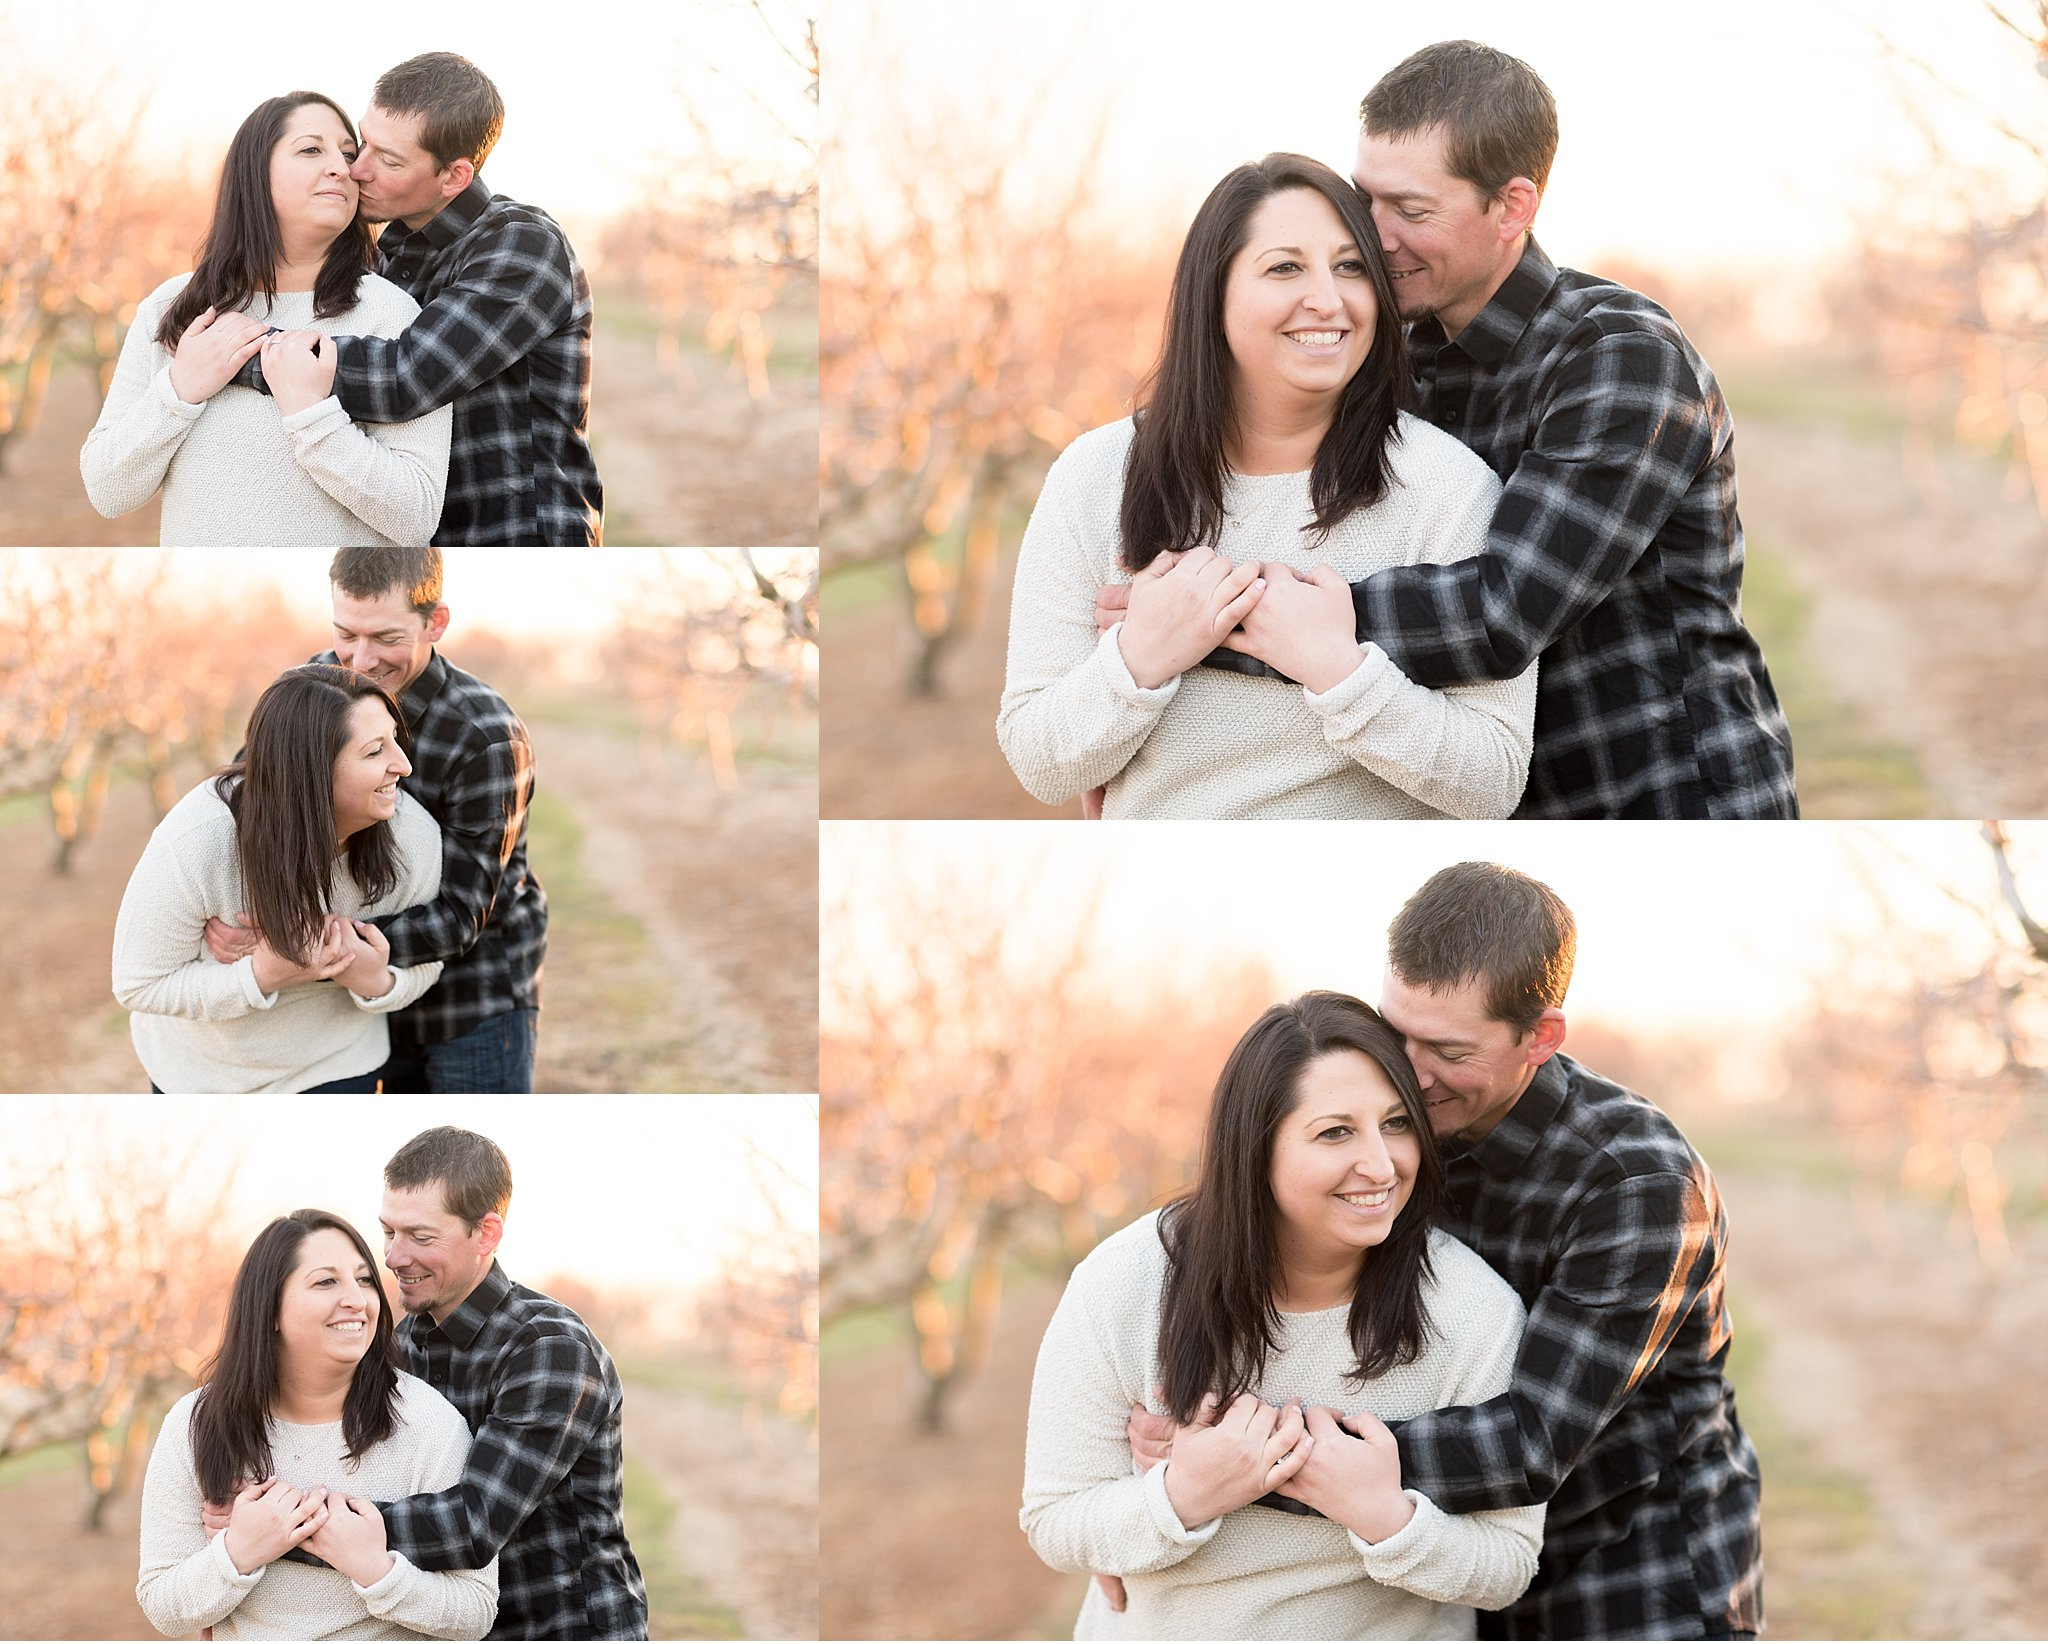 New Providence orchard Lancaster County Wedding and engagement photographer photo_0966.jpg